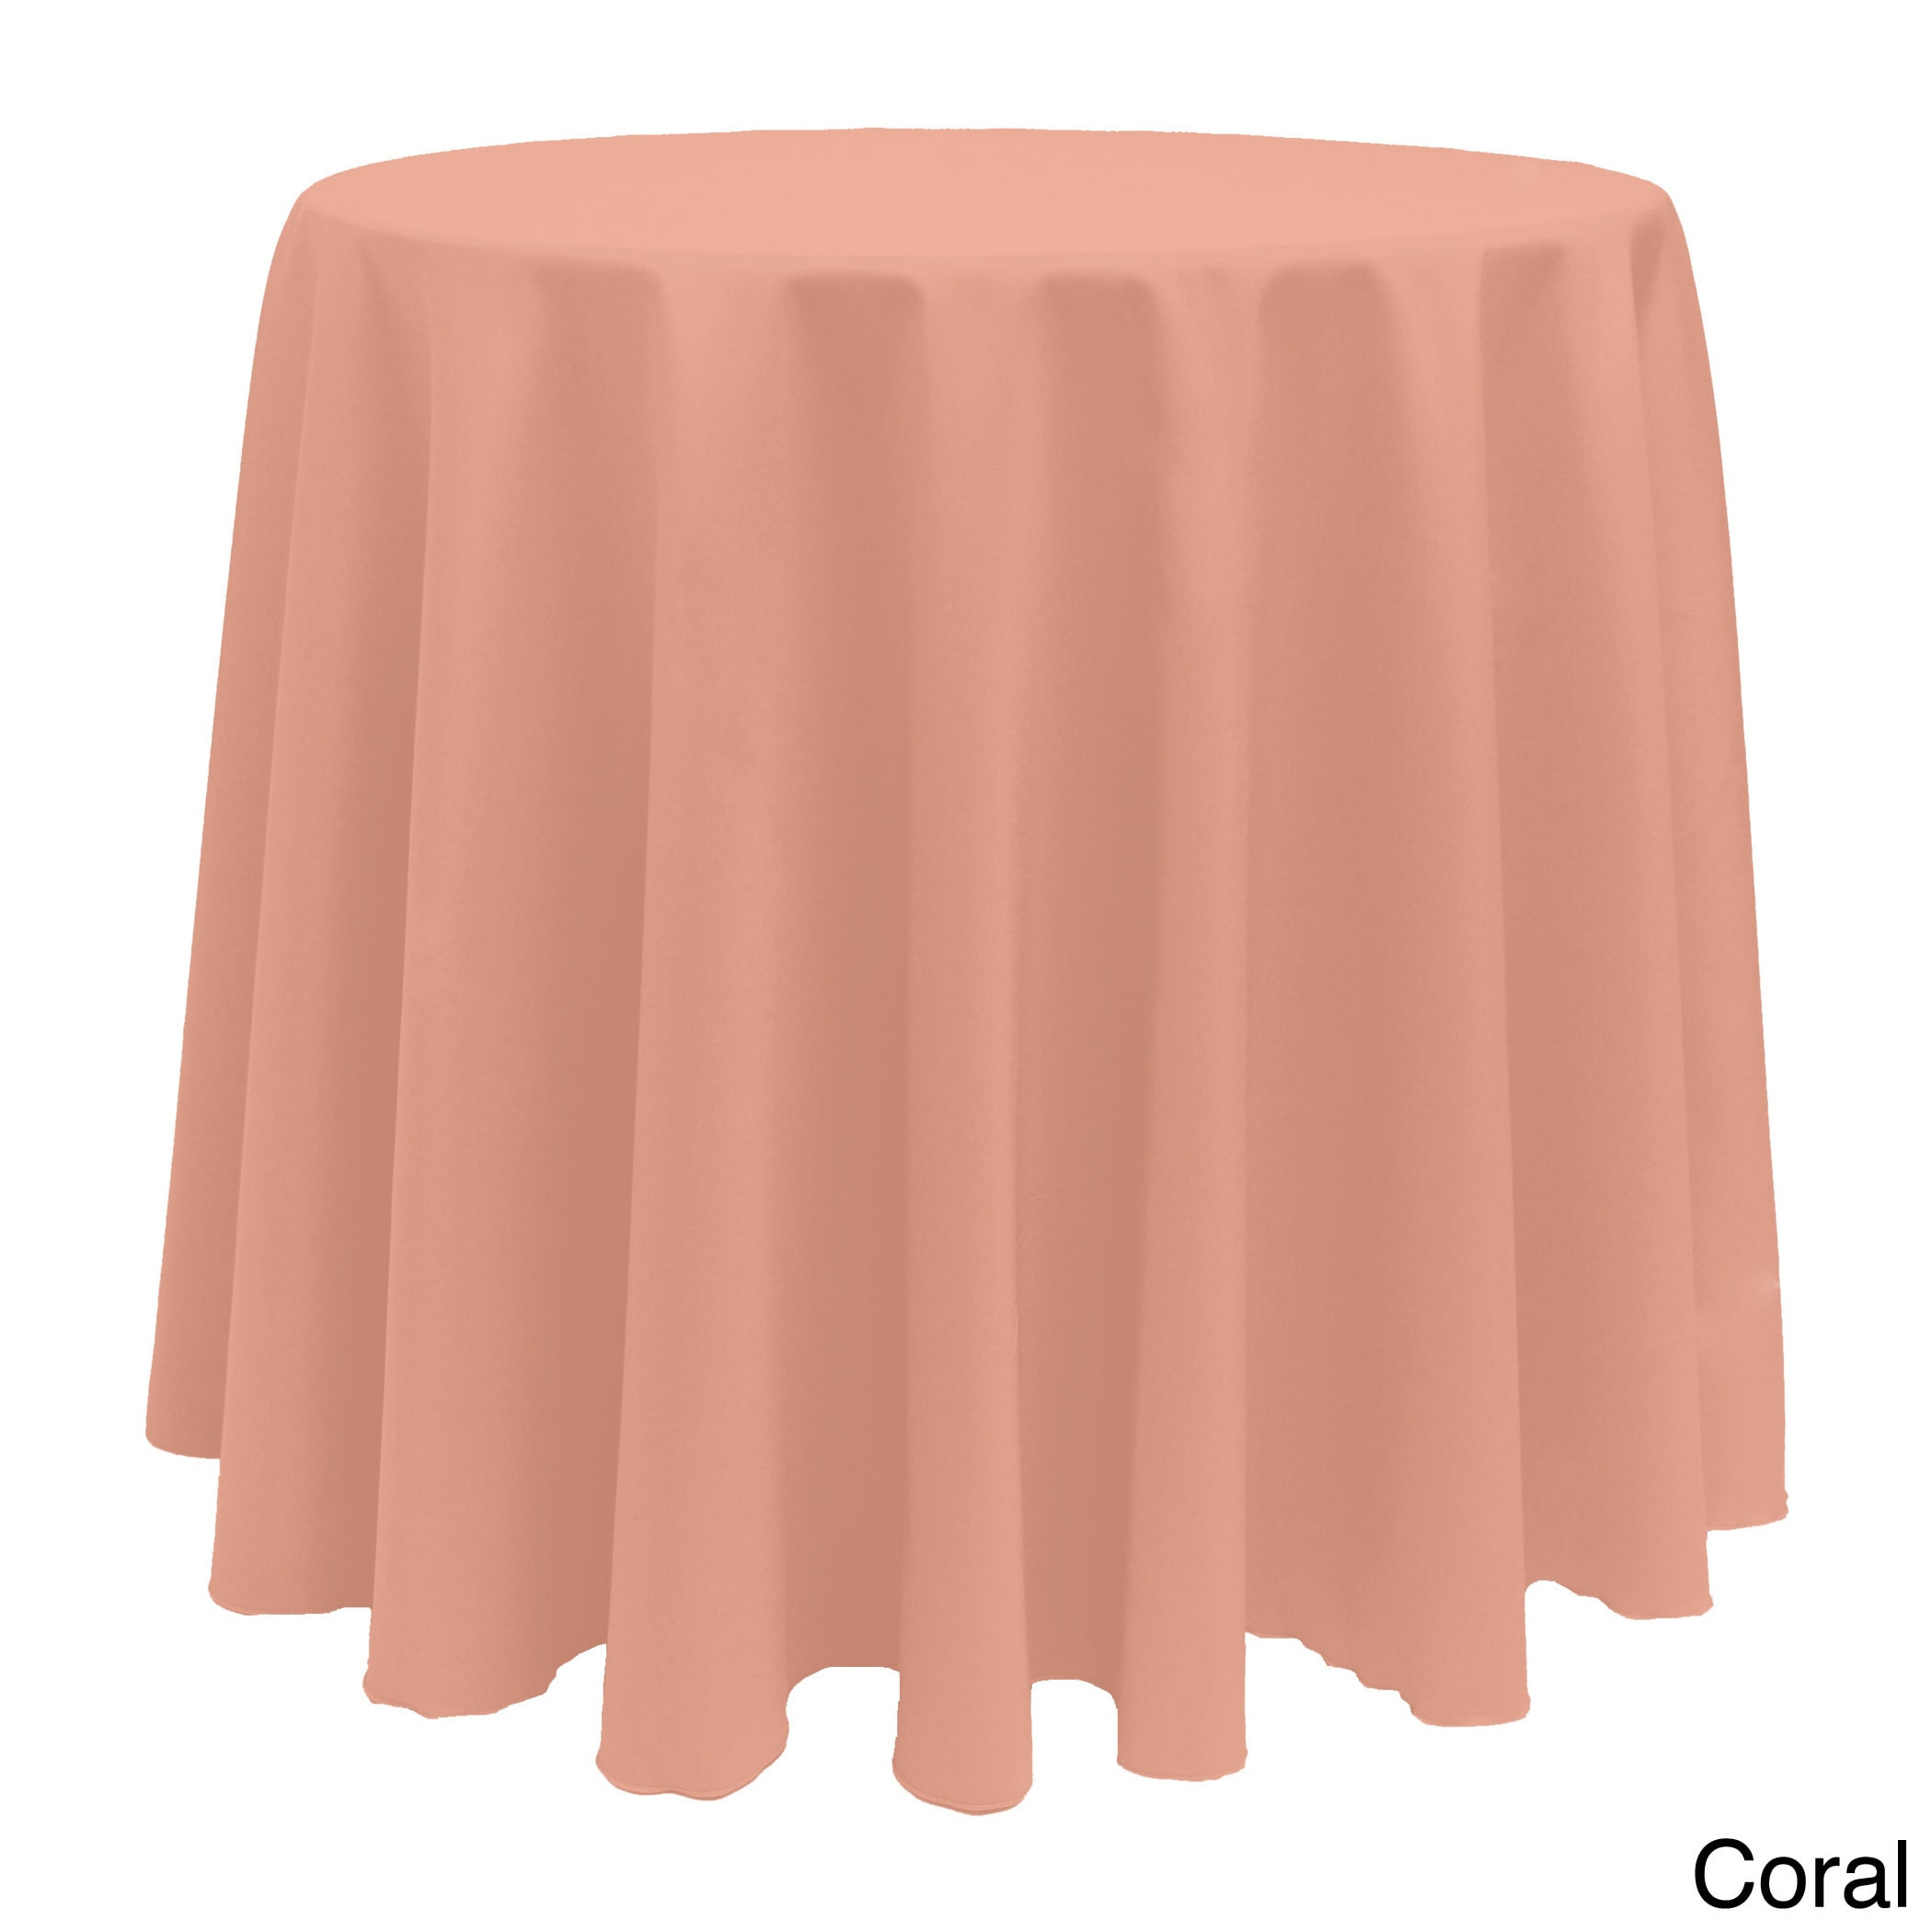 Solid Color 108 Inches Round Colorful Tablecloth   108   Free Shipping On  Orders Over $45   Overstock.com   17343837